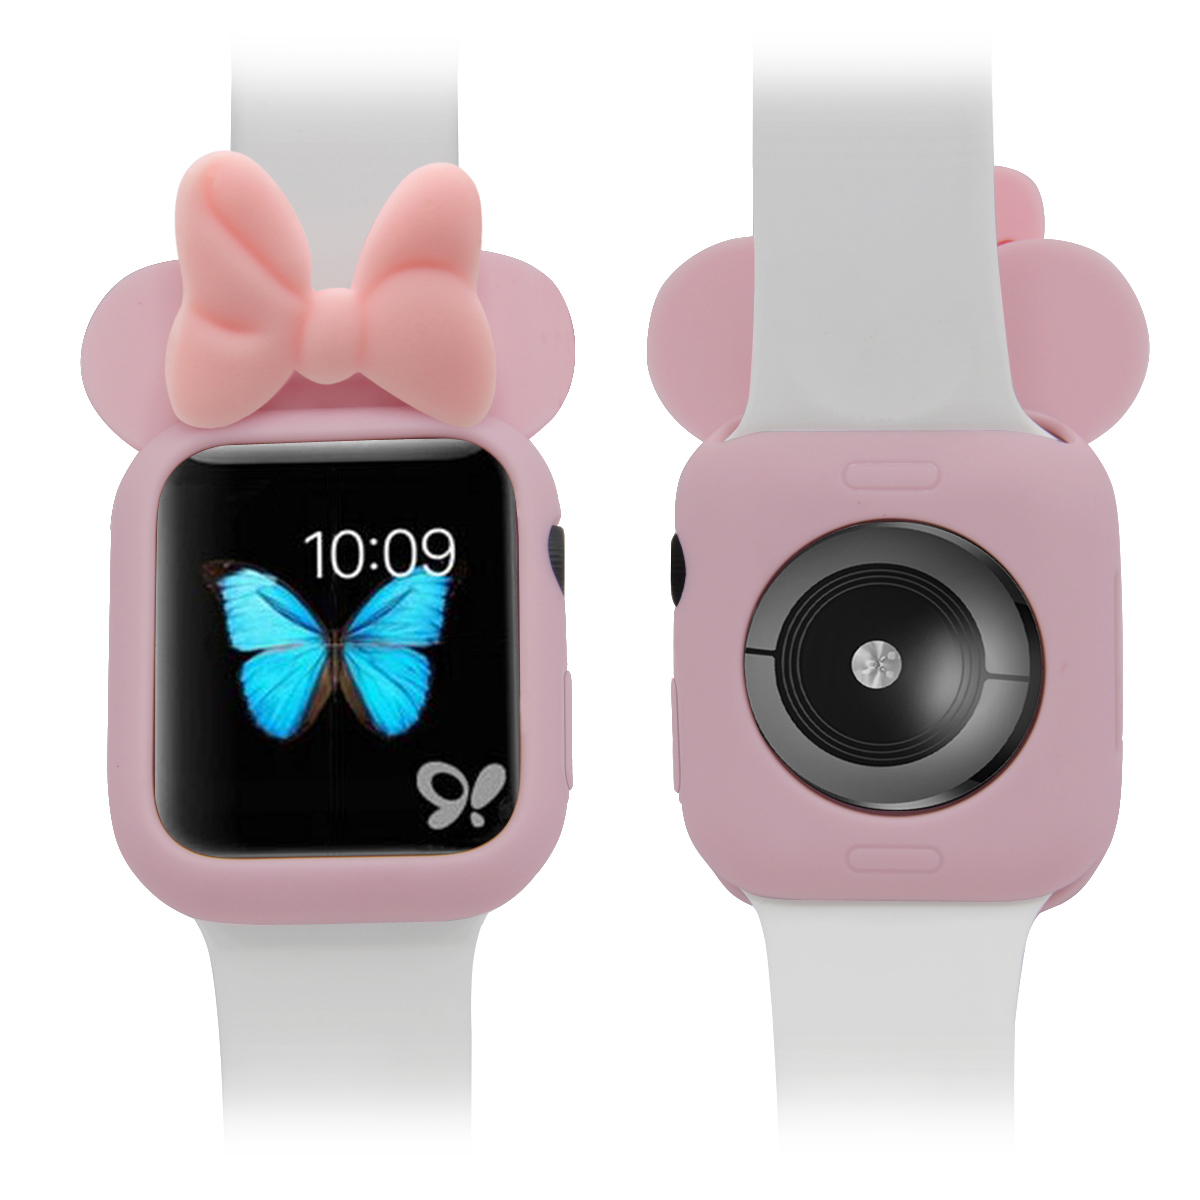 MI NI Watch Cover Case For Apple Watch 4 5/3/2/1 40MM 44MM Lovely Protect Tpu Cases For Iwatch Series 4 5/3/2/1